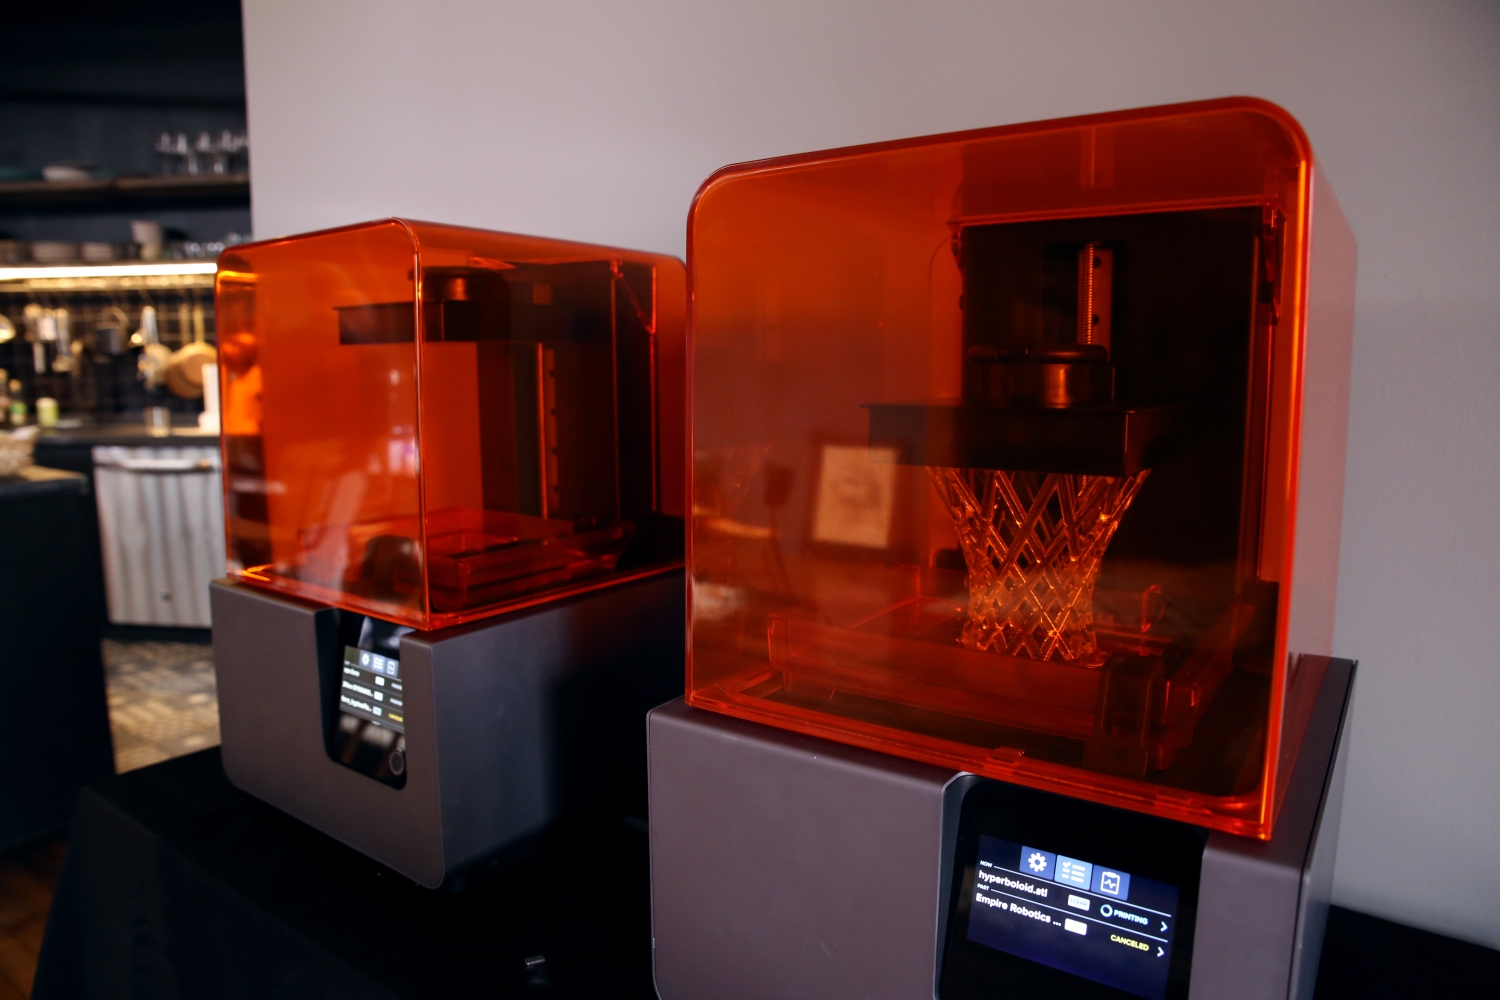 Hands-On With The New Formlabs Form 2 3D Printer | TechCrunch